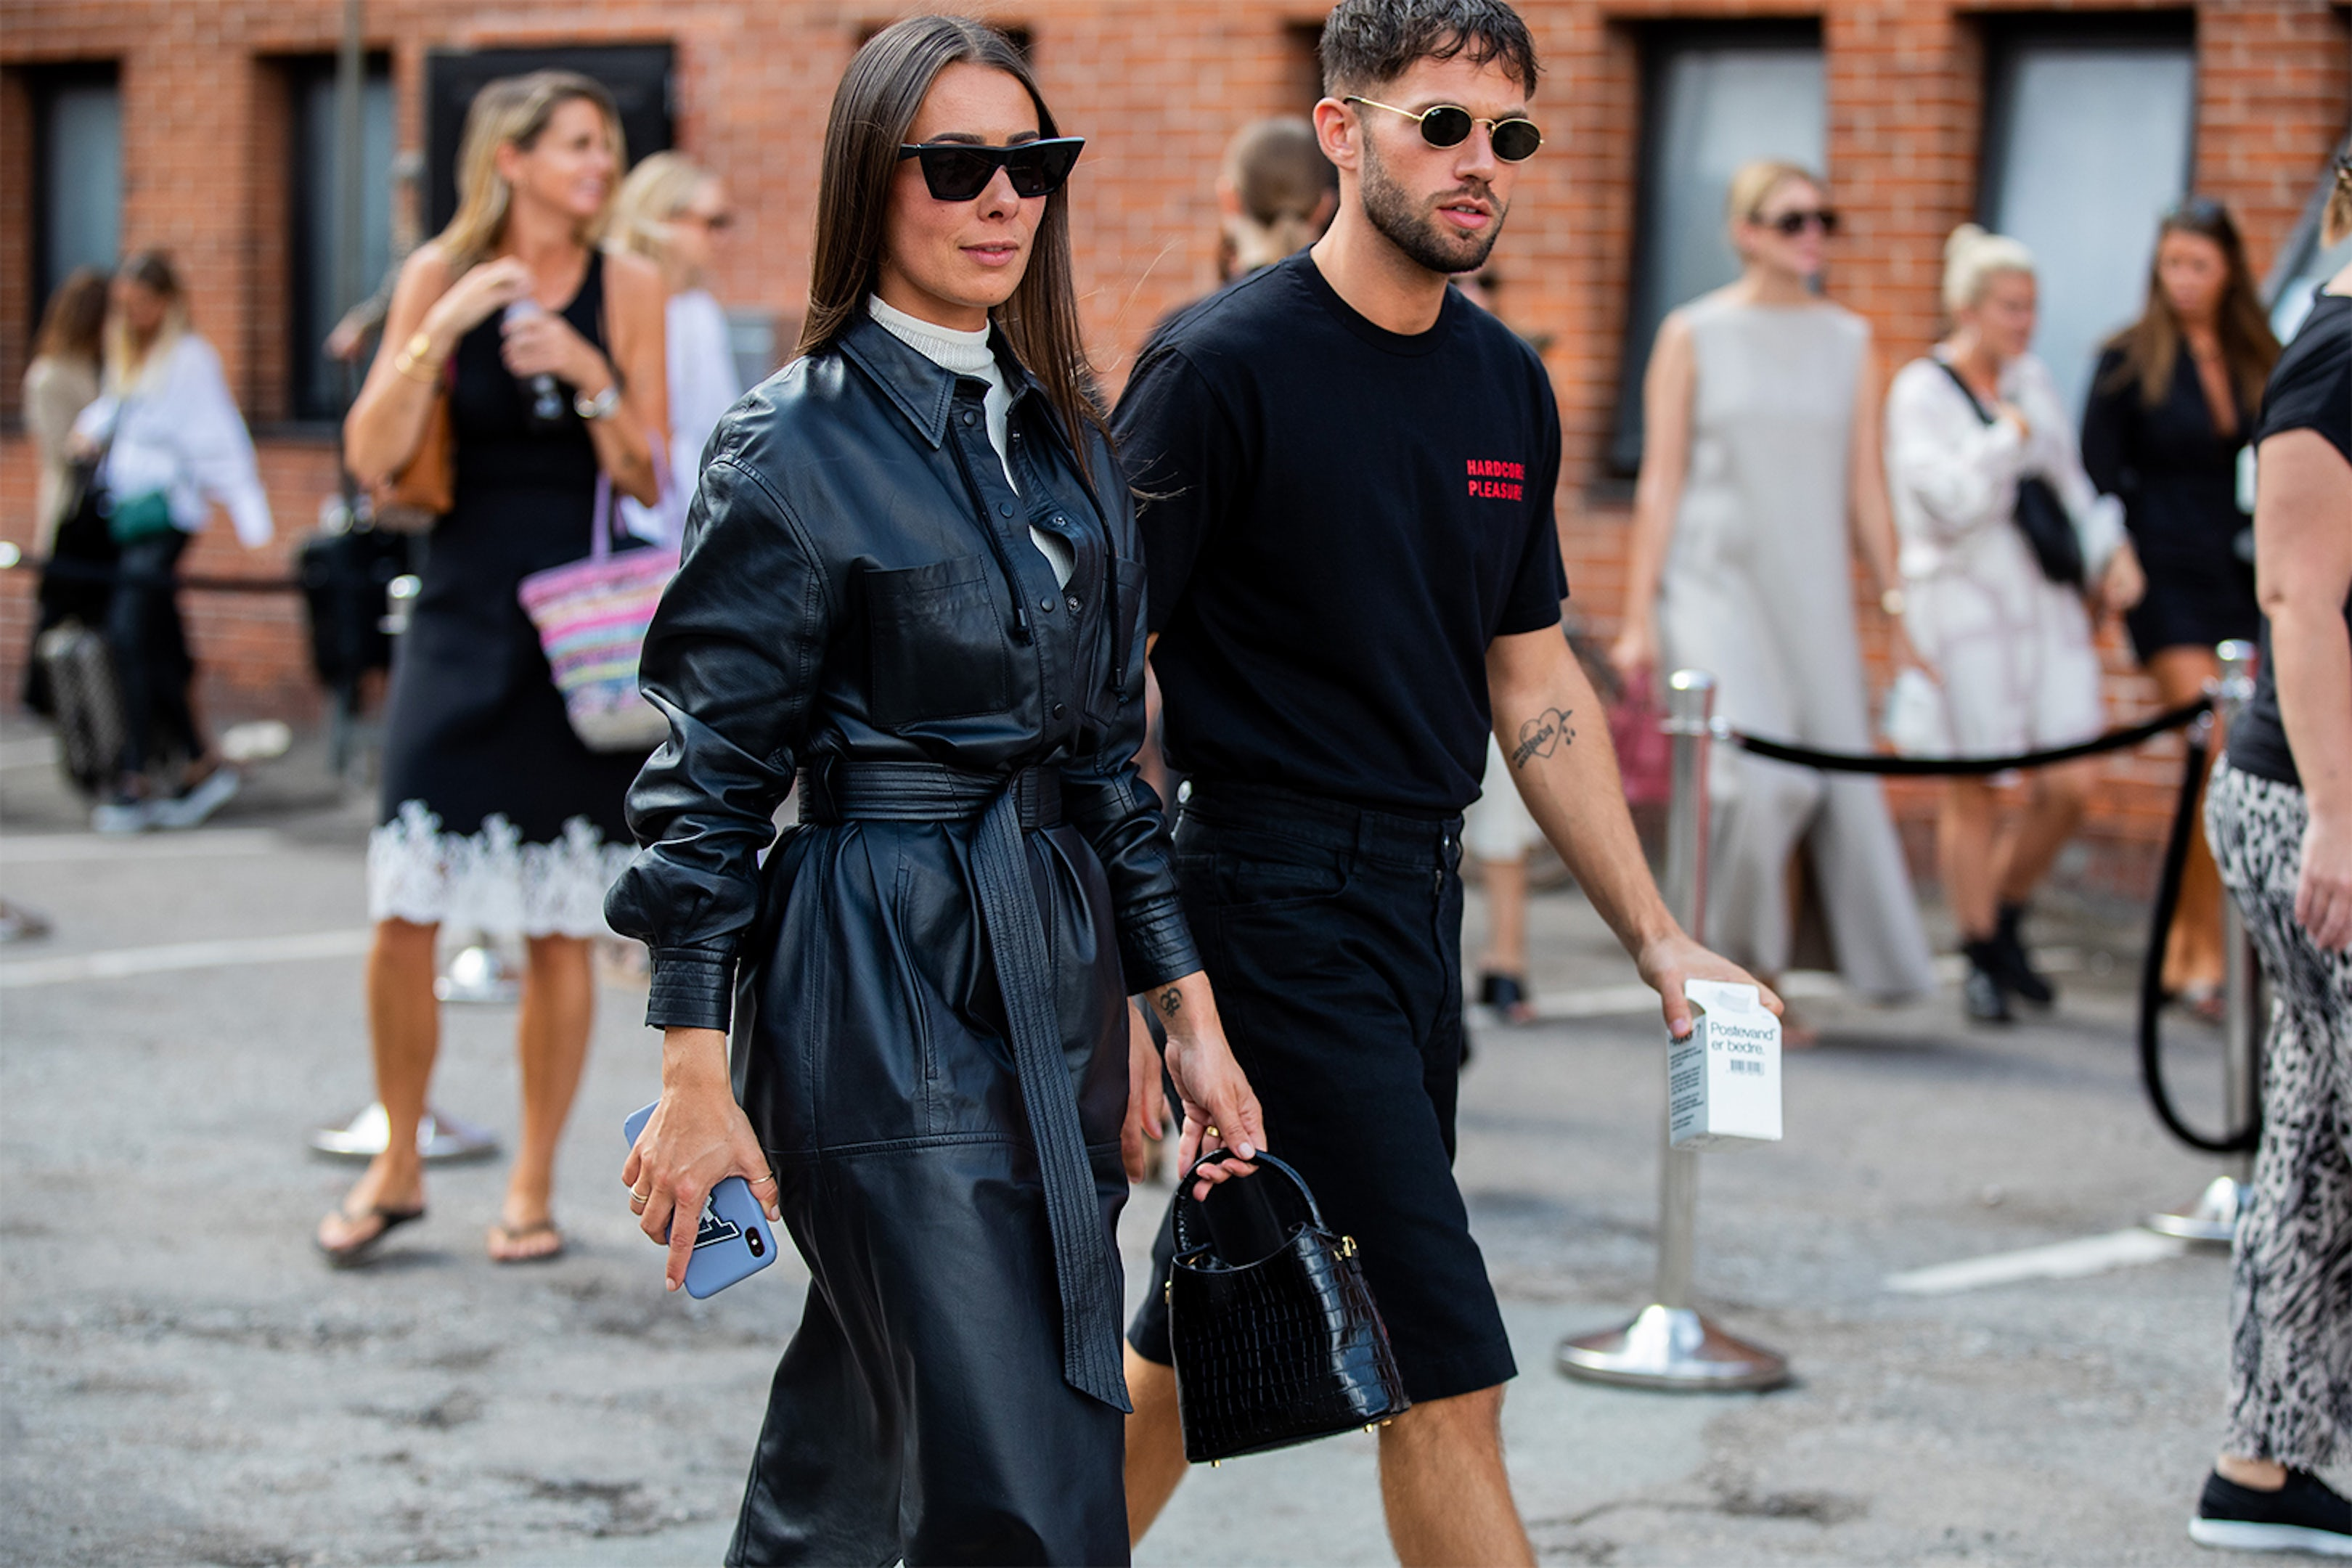 copenhagen fashion week couple 1